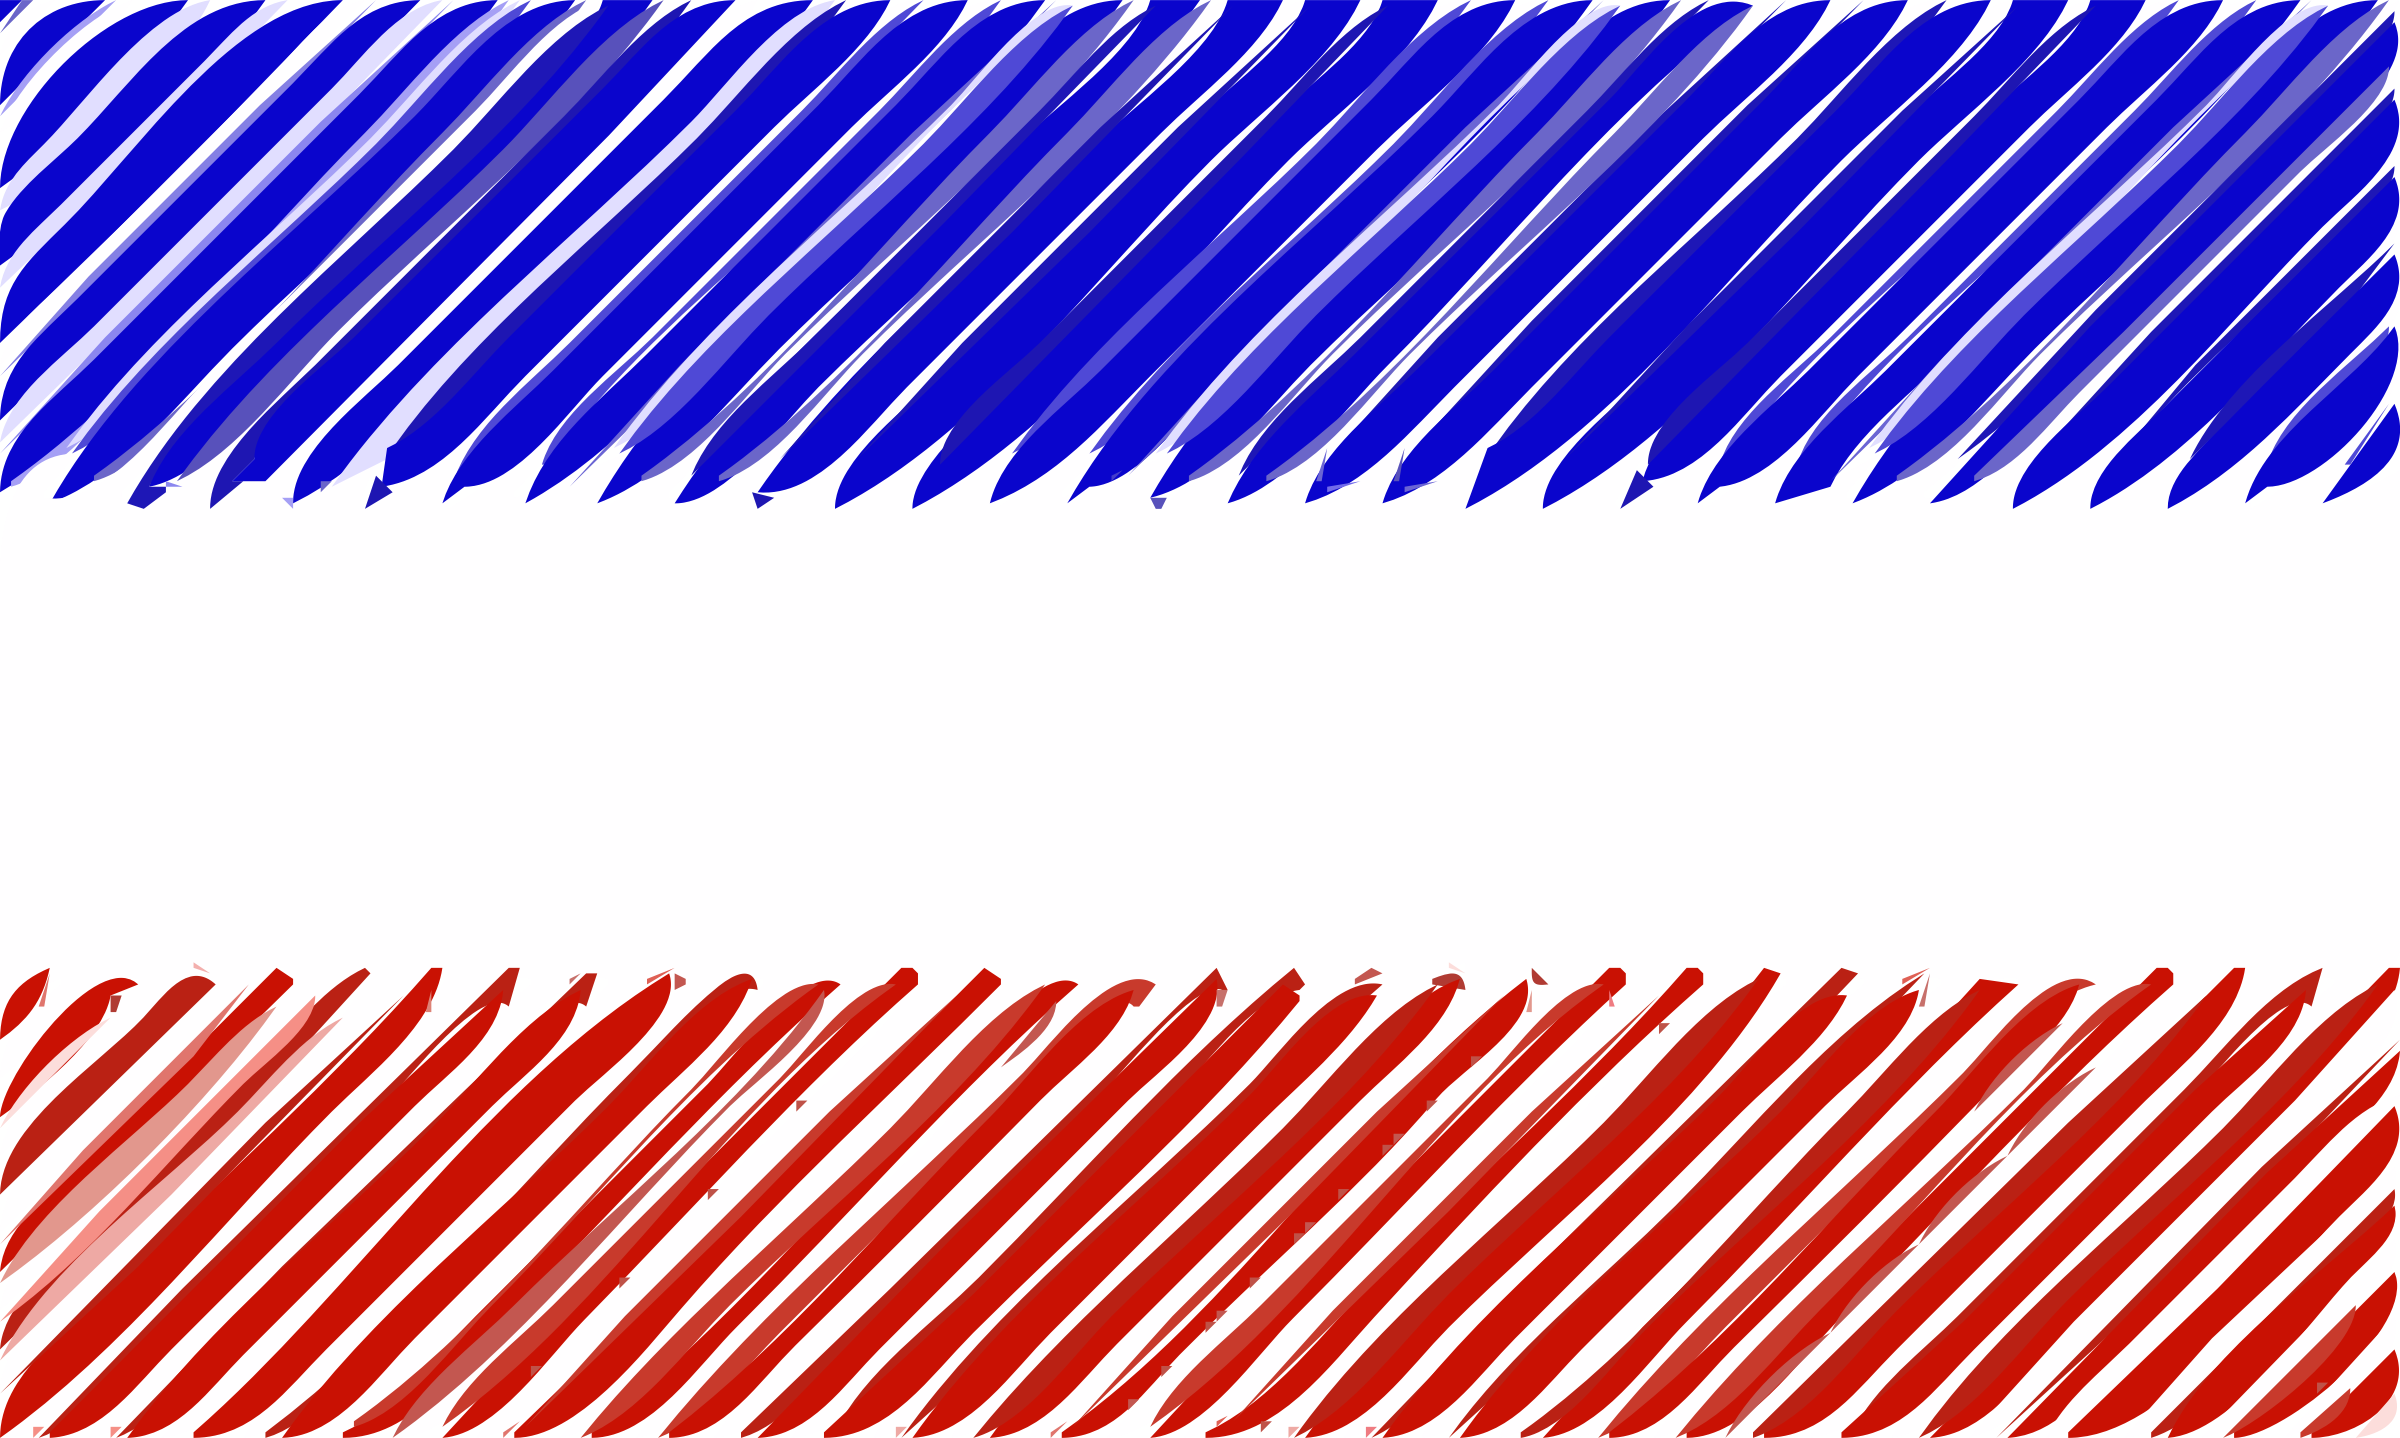 Serbia flag linear by Joesph